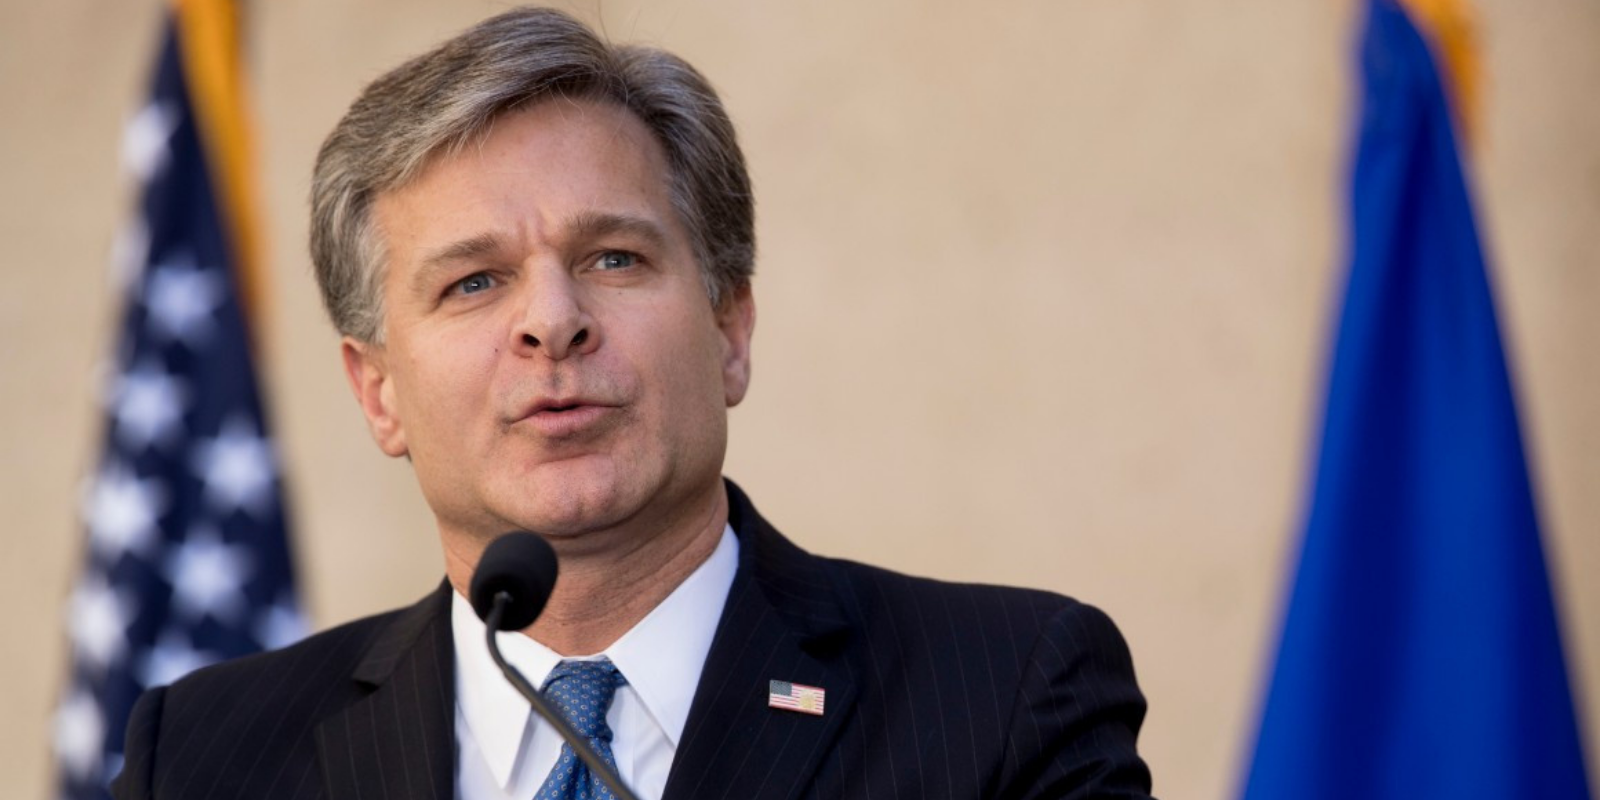 BREAKING: President Biden expresses confidence in FBI Director Chris Wray, plans to keep him in current role